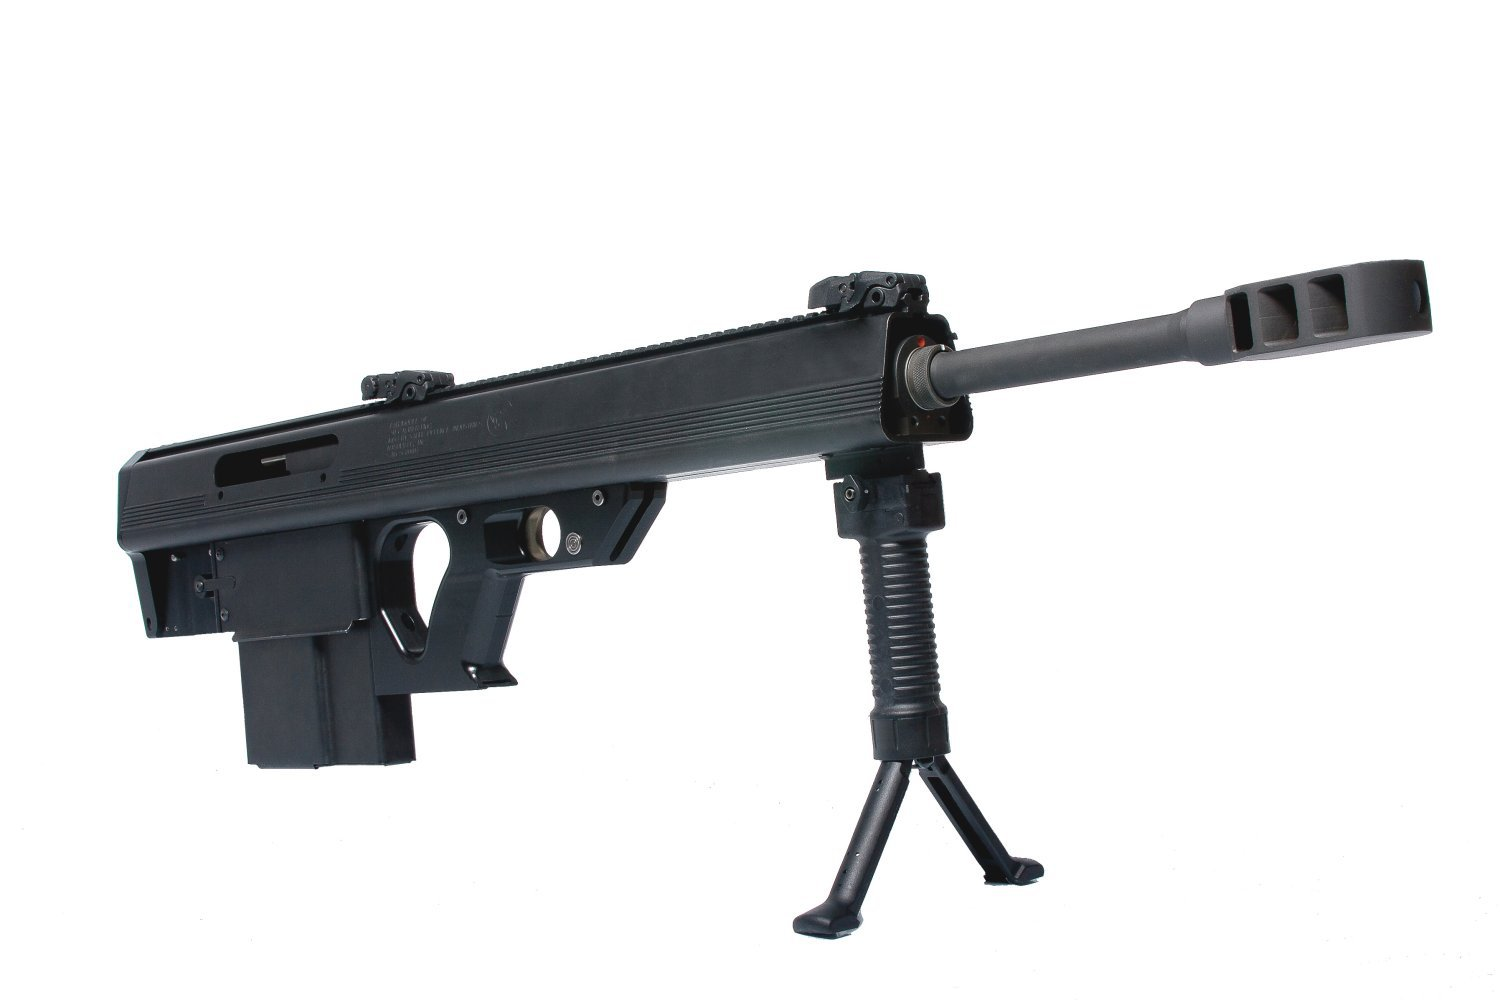 Leader 50 BMG Semi Auto Bullpup .50 BMG Anti Materiel Sniper Rifle Glamour Shot 1 <!  :en  >Leader 50 BMG Revolutionary Ultra Compact and Lightweight Semi Auto Bullpup .50 BMG (12.7x99mm NATO) Anti Materiel/Sniper Rifle for Military Special Operations Forces (SOF) and Civilian Tactical Shooters: Coming Soon to a Theater of Operations and Shooting Range Near You? <!  :  >